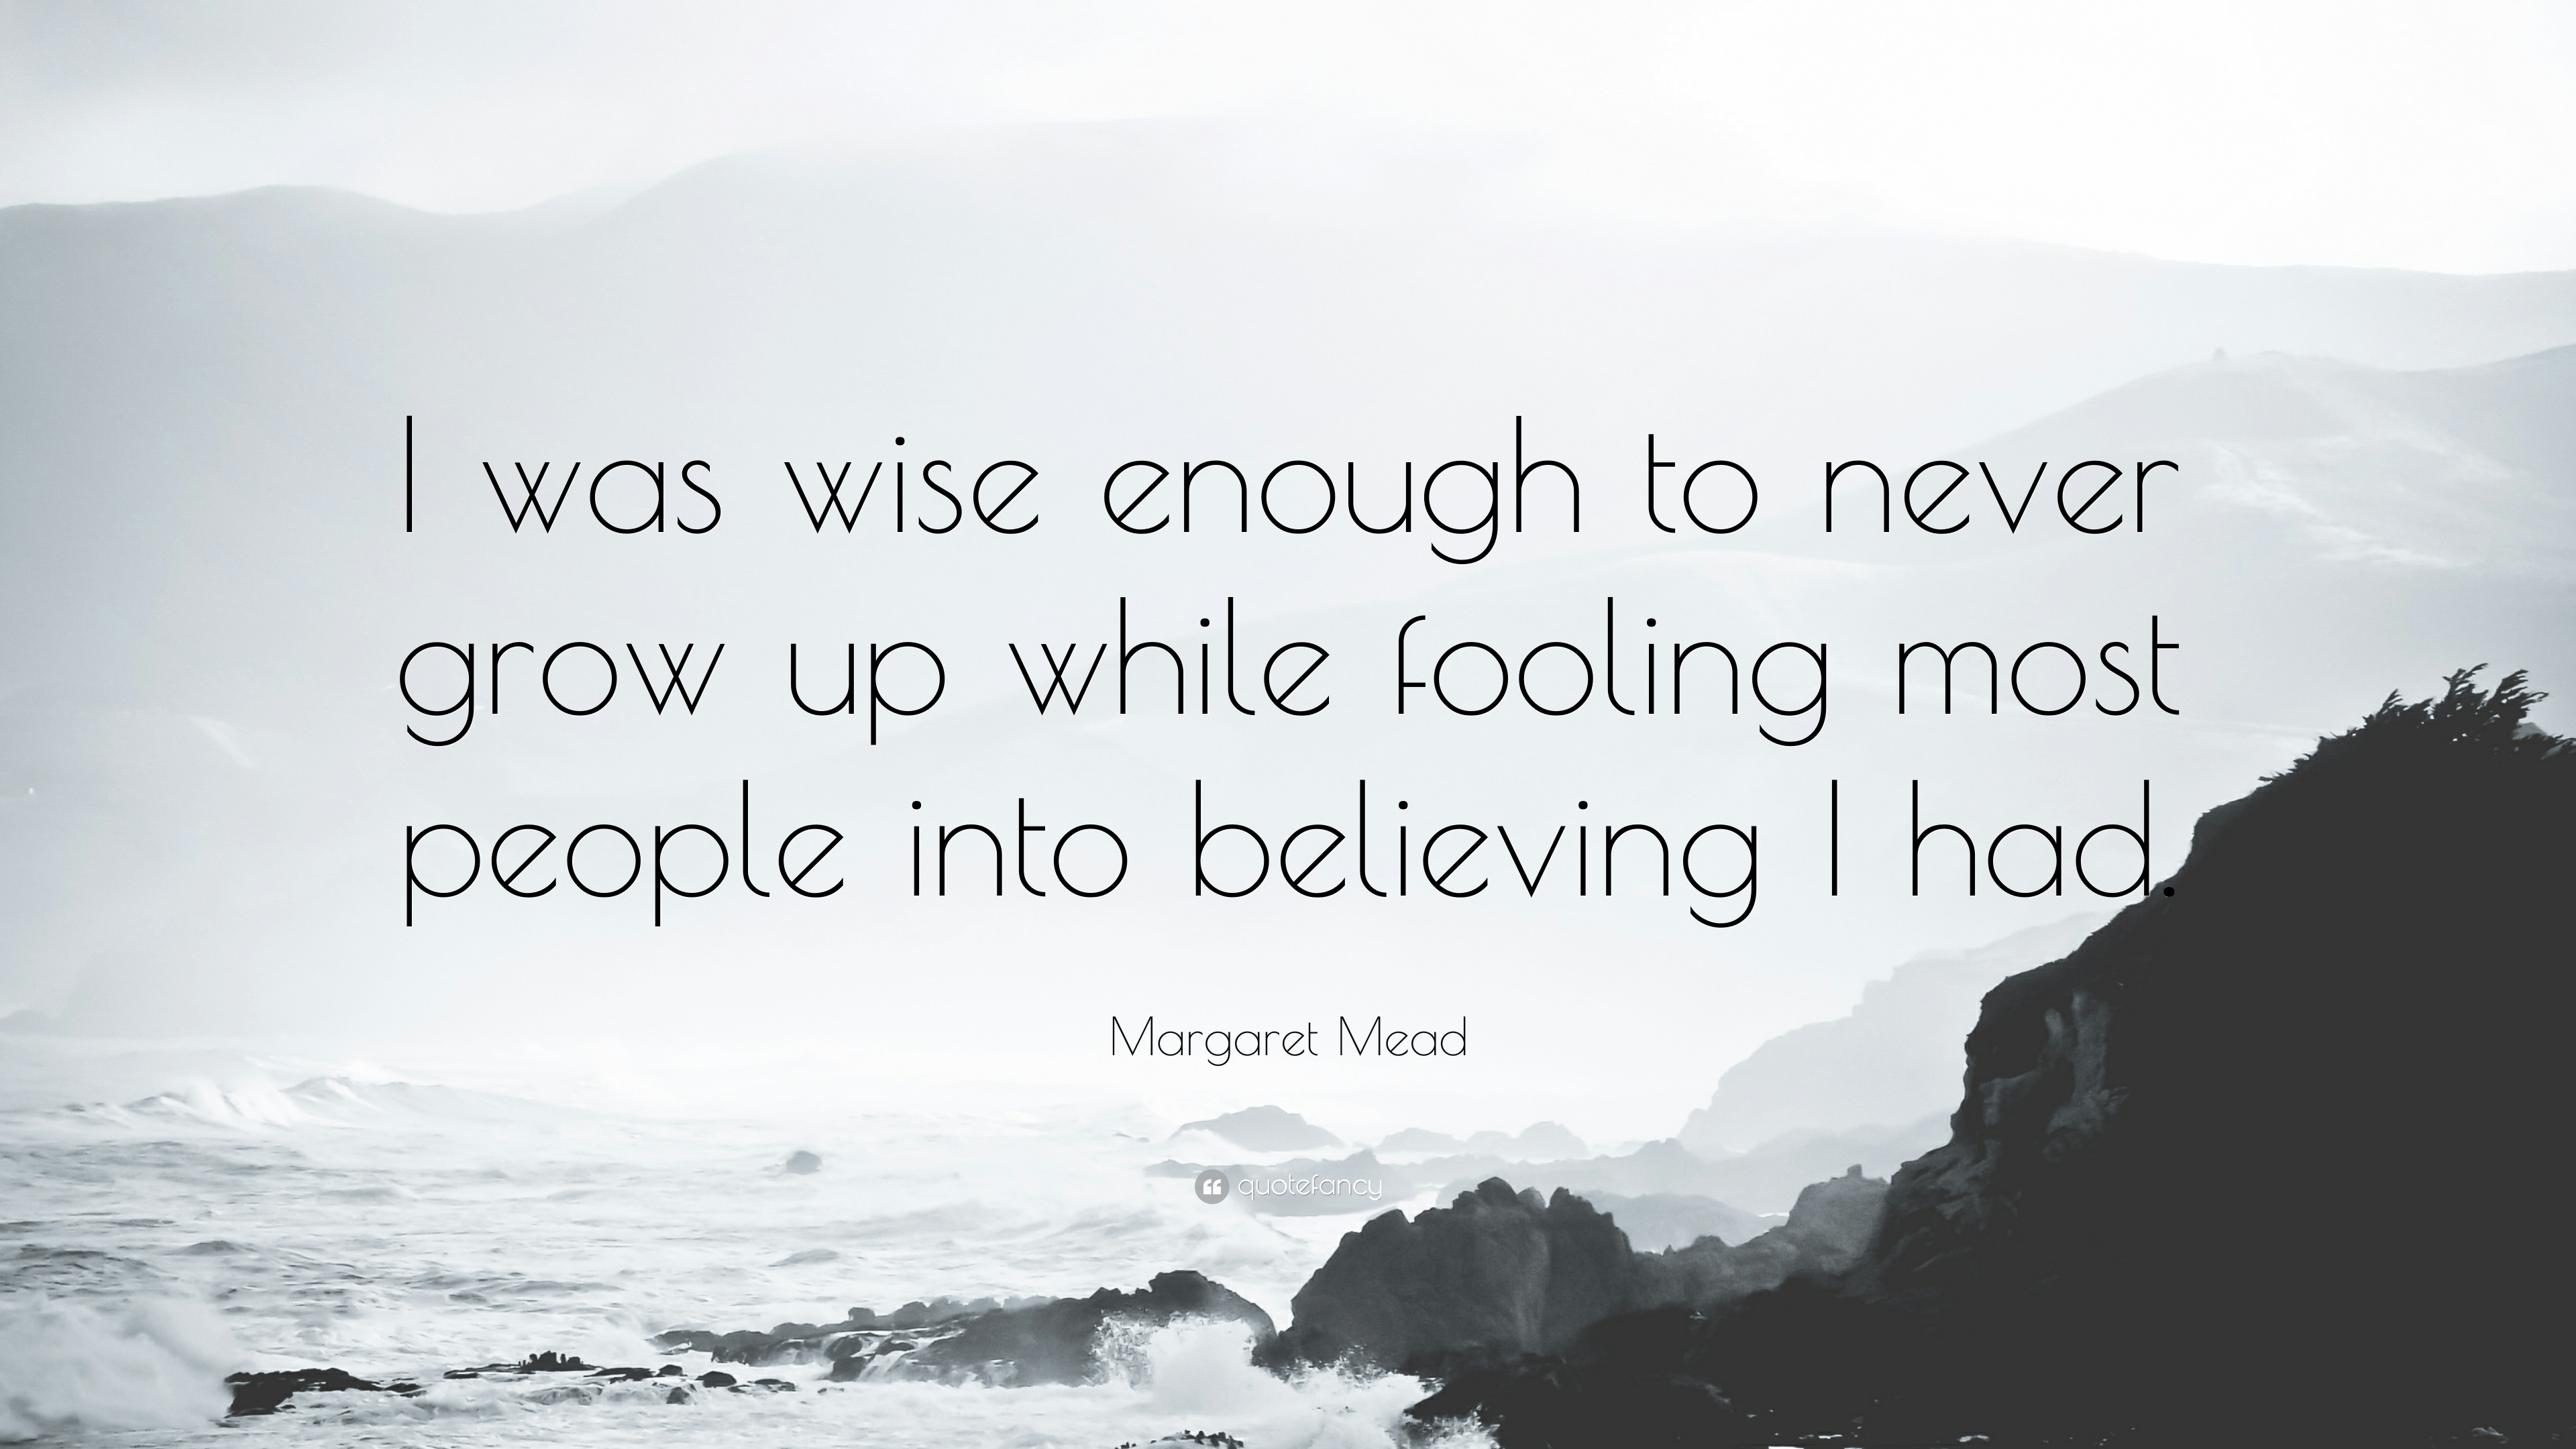 Margaret Mead Quote I Was Wise Enough To Never Grow Up While